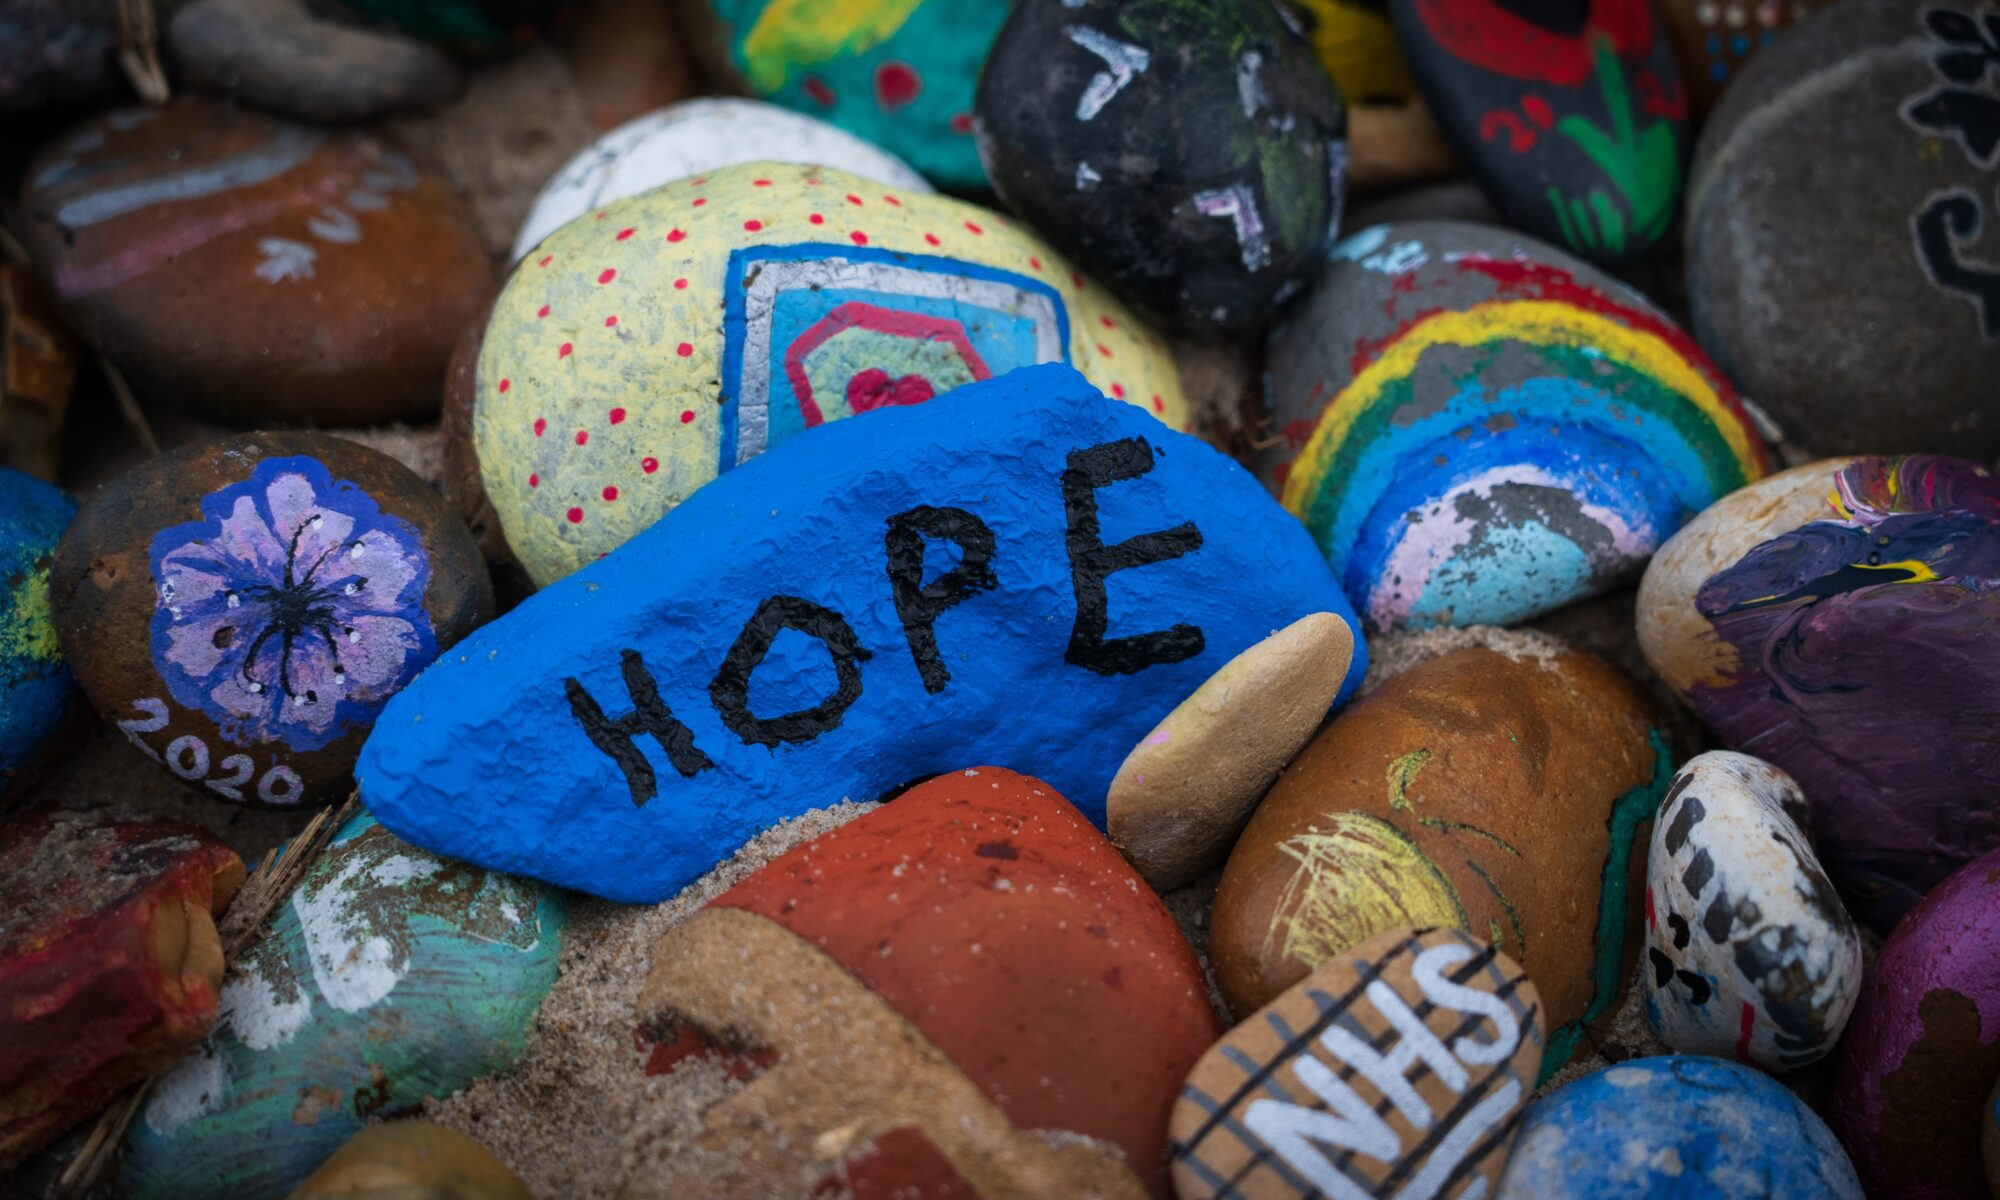 hope painted on a rock